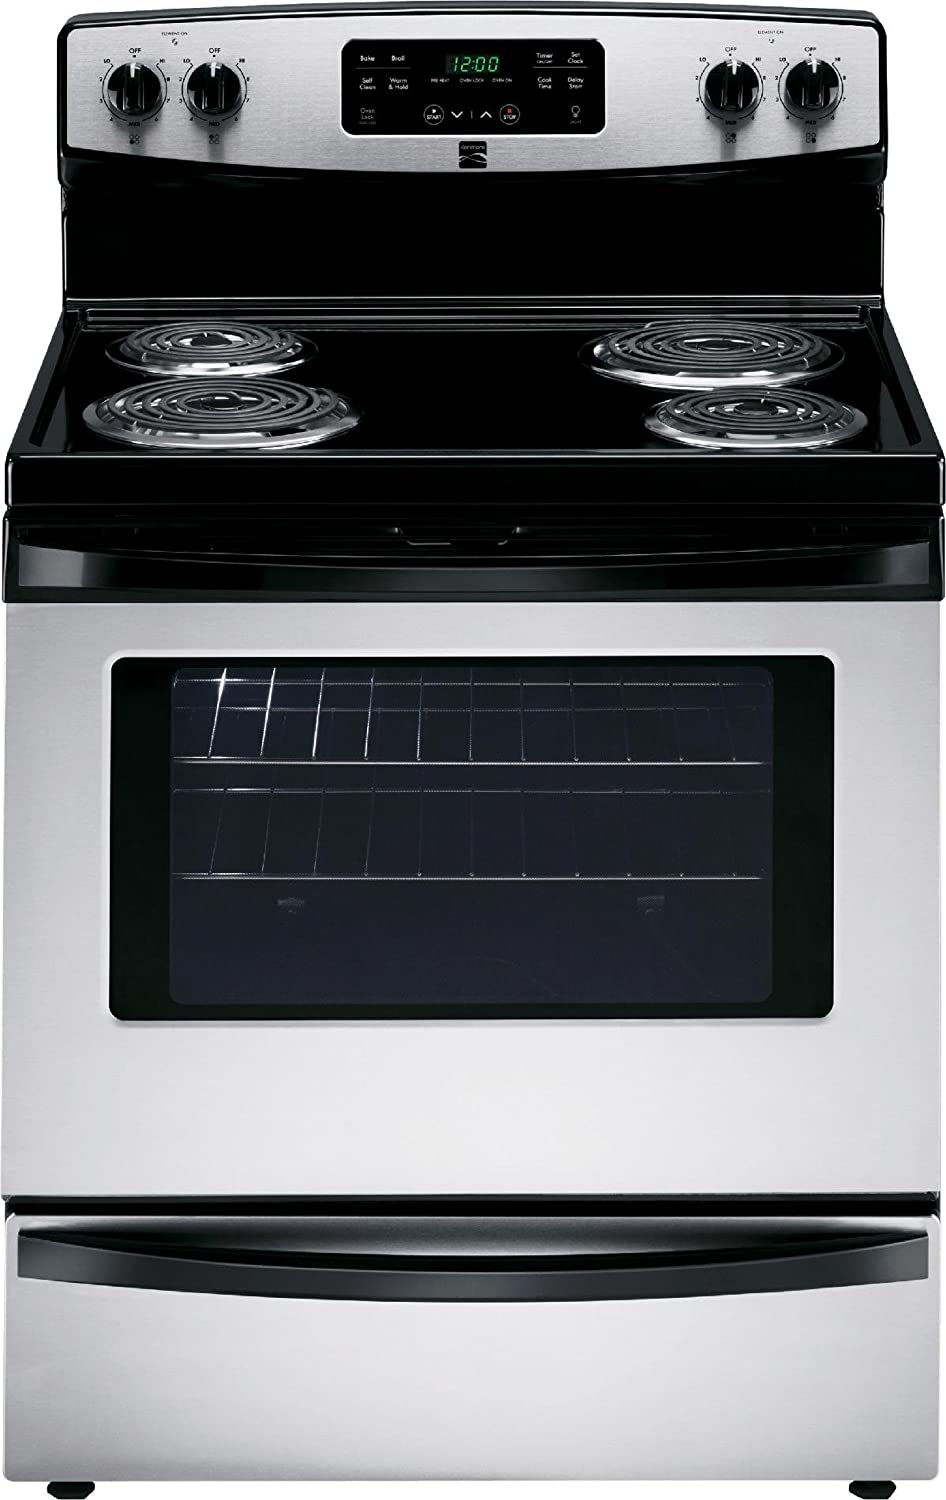 Kenmore 6.4 cu. ft. Front Control Electric Range in Stainless Steel, includes delivery and hookup -2295123